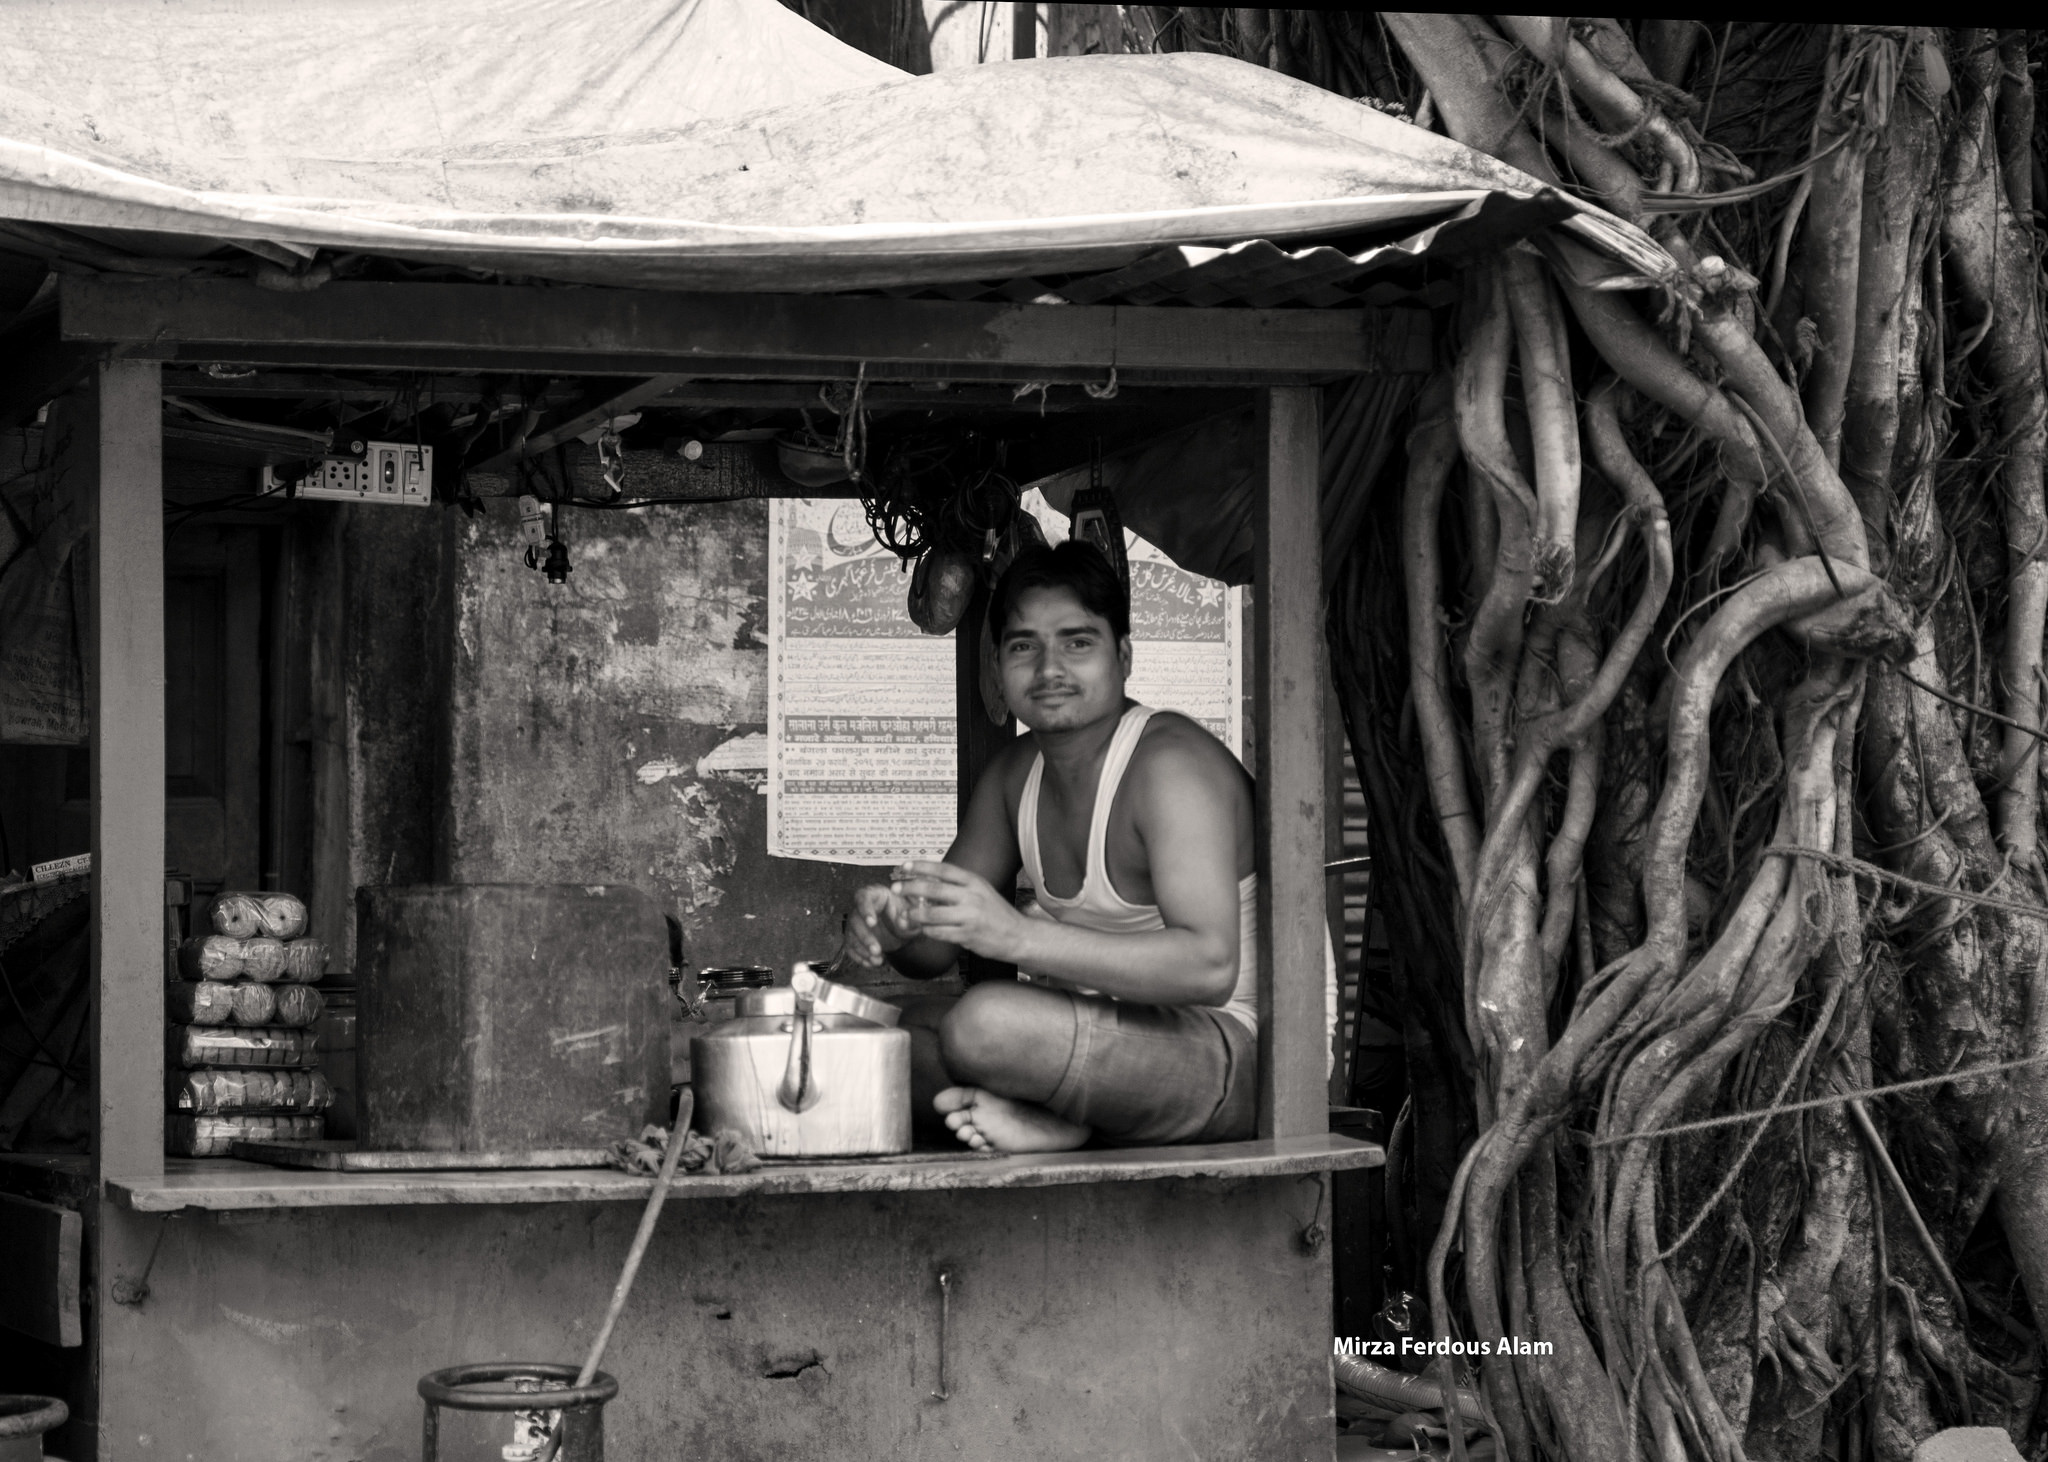 A chaiwalla selling chai in India